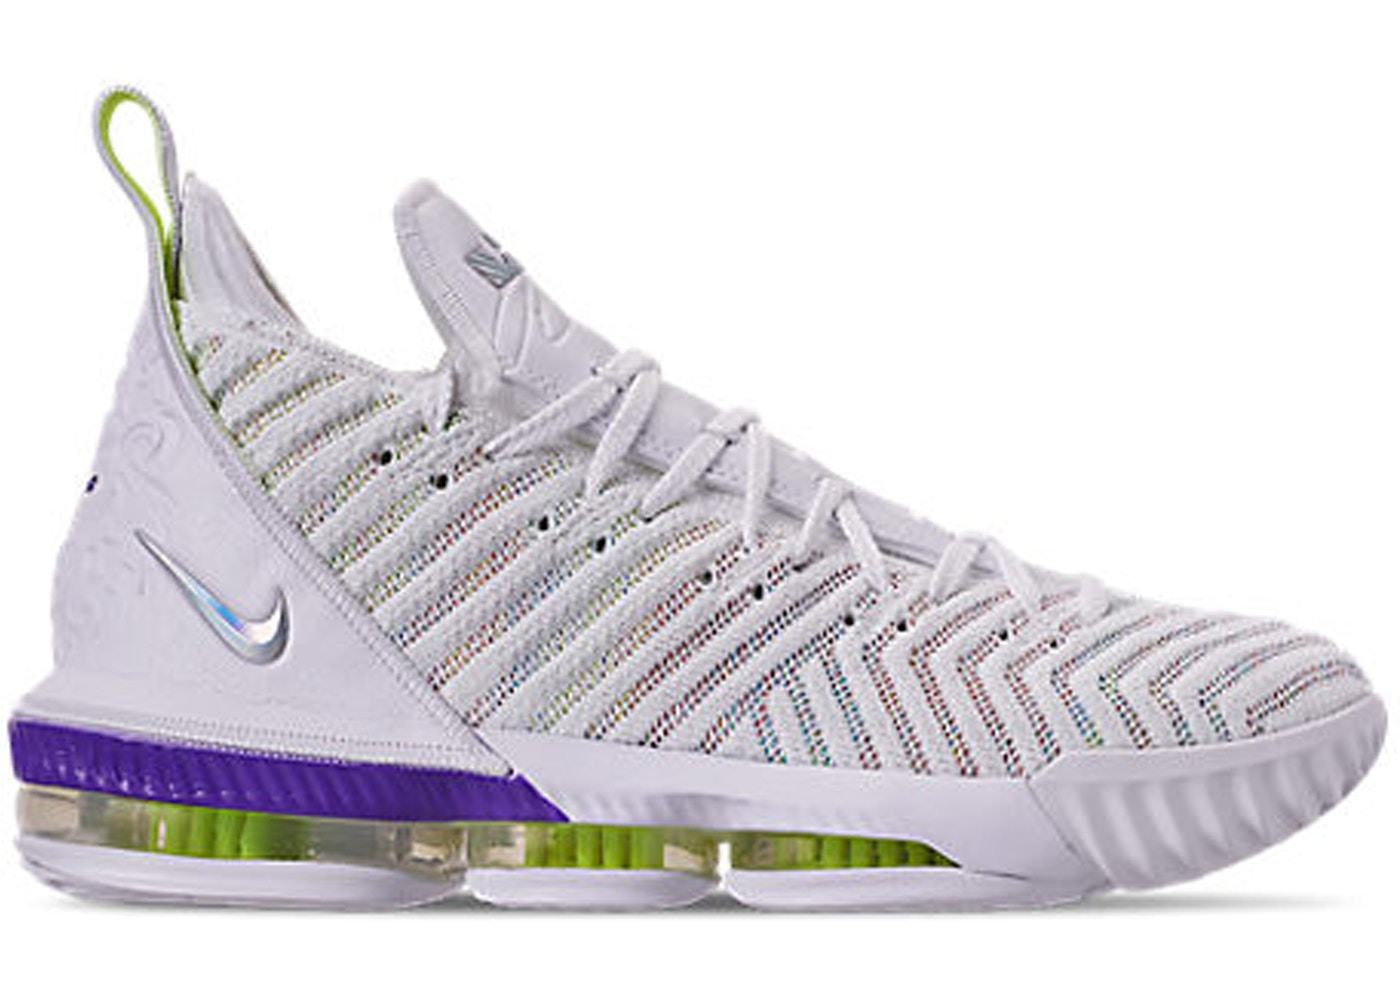 best service d7bc2 f06bd Buy Nike LeBron Shoes & Deadstock Sneakers